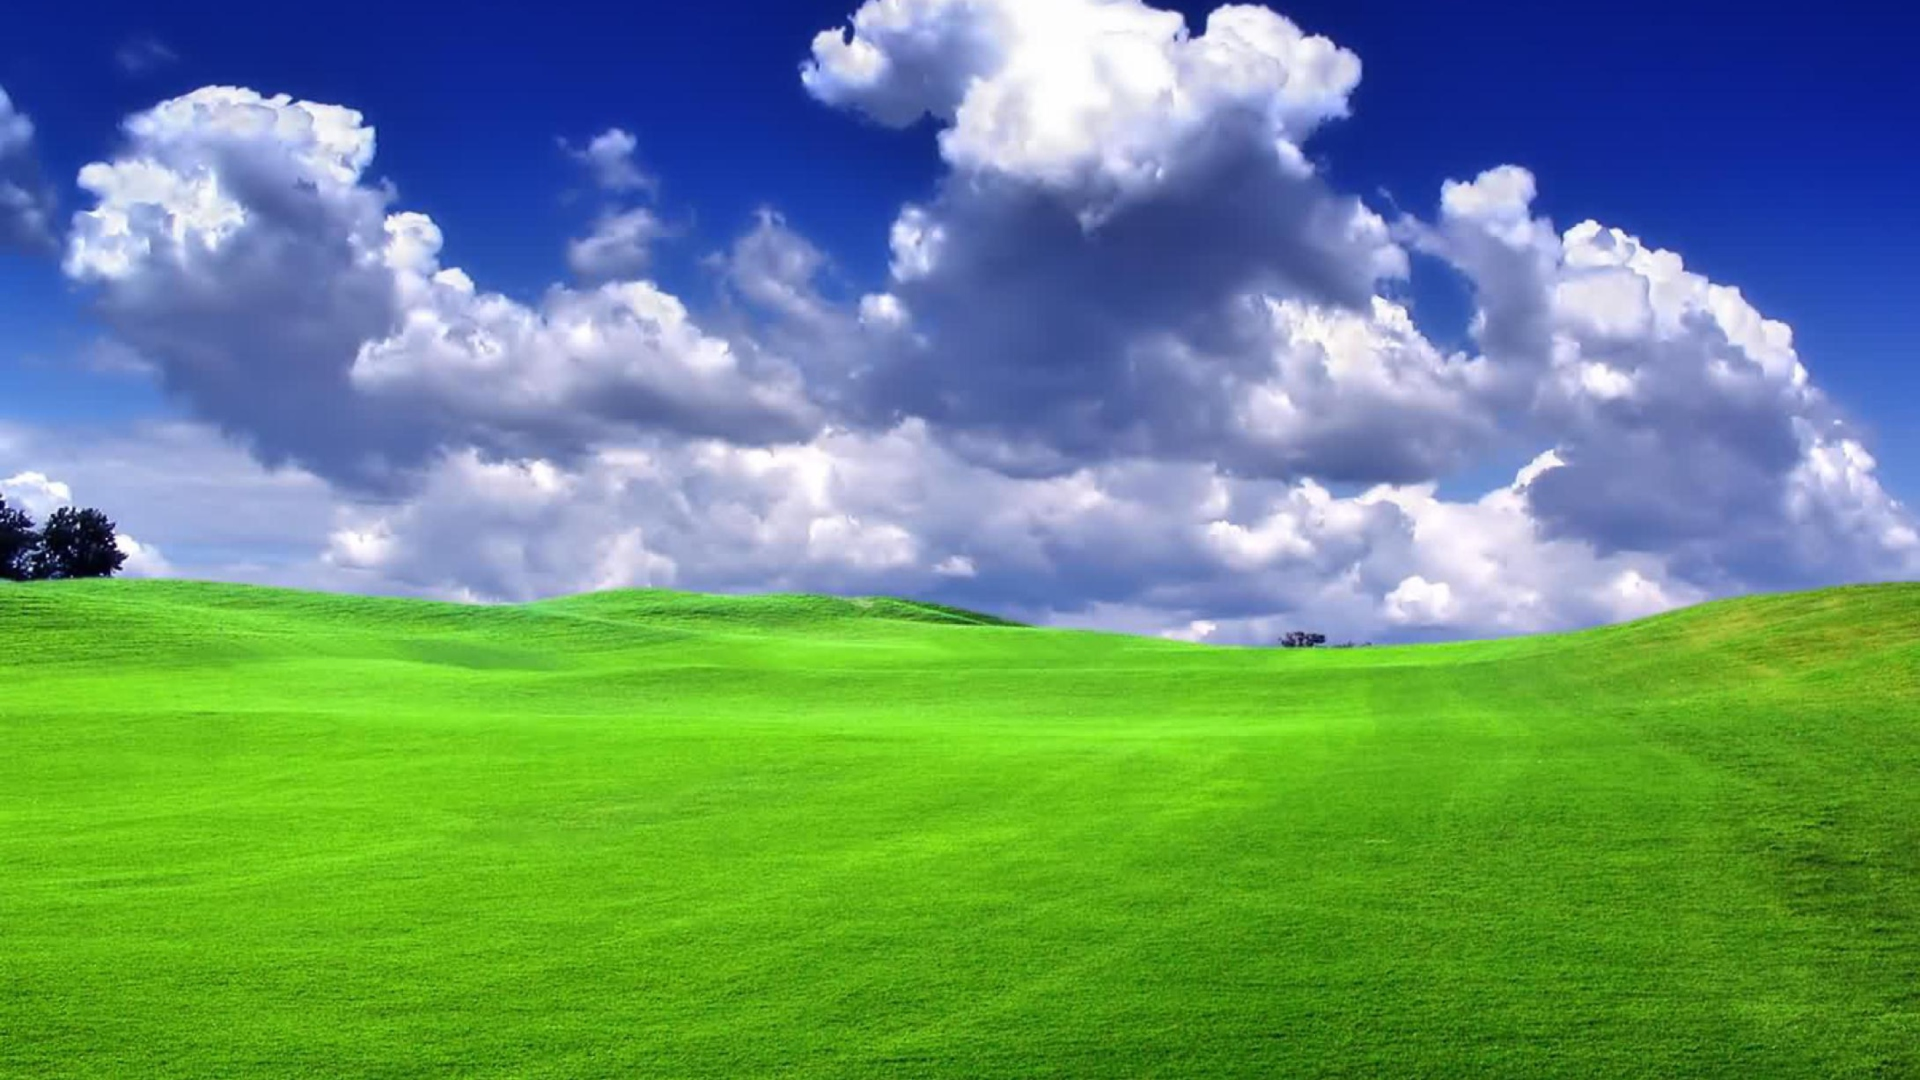 Full Hd P Windows Xp Sp Wallpapers Hd Desktop Backgrounds 1920x1080